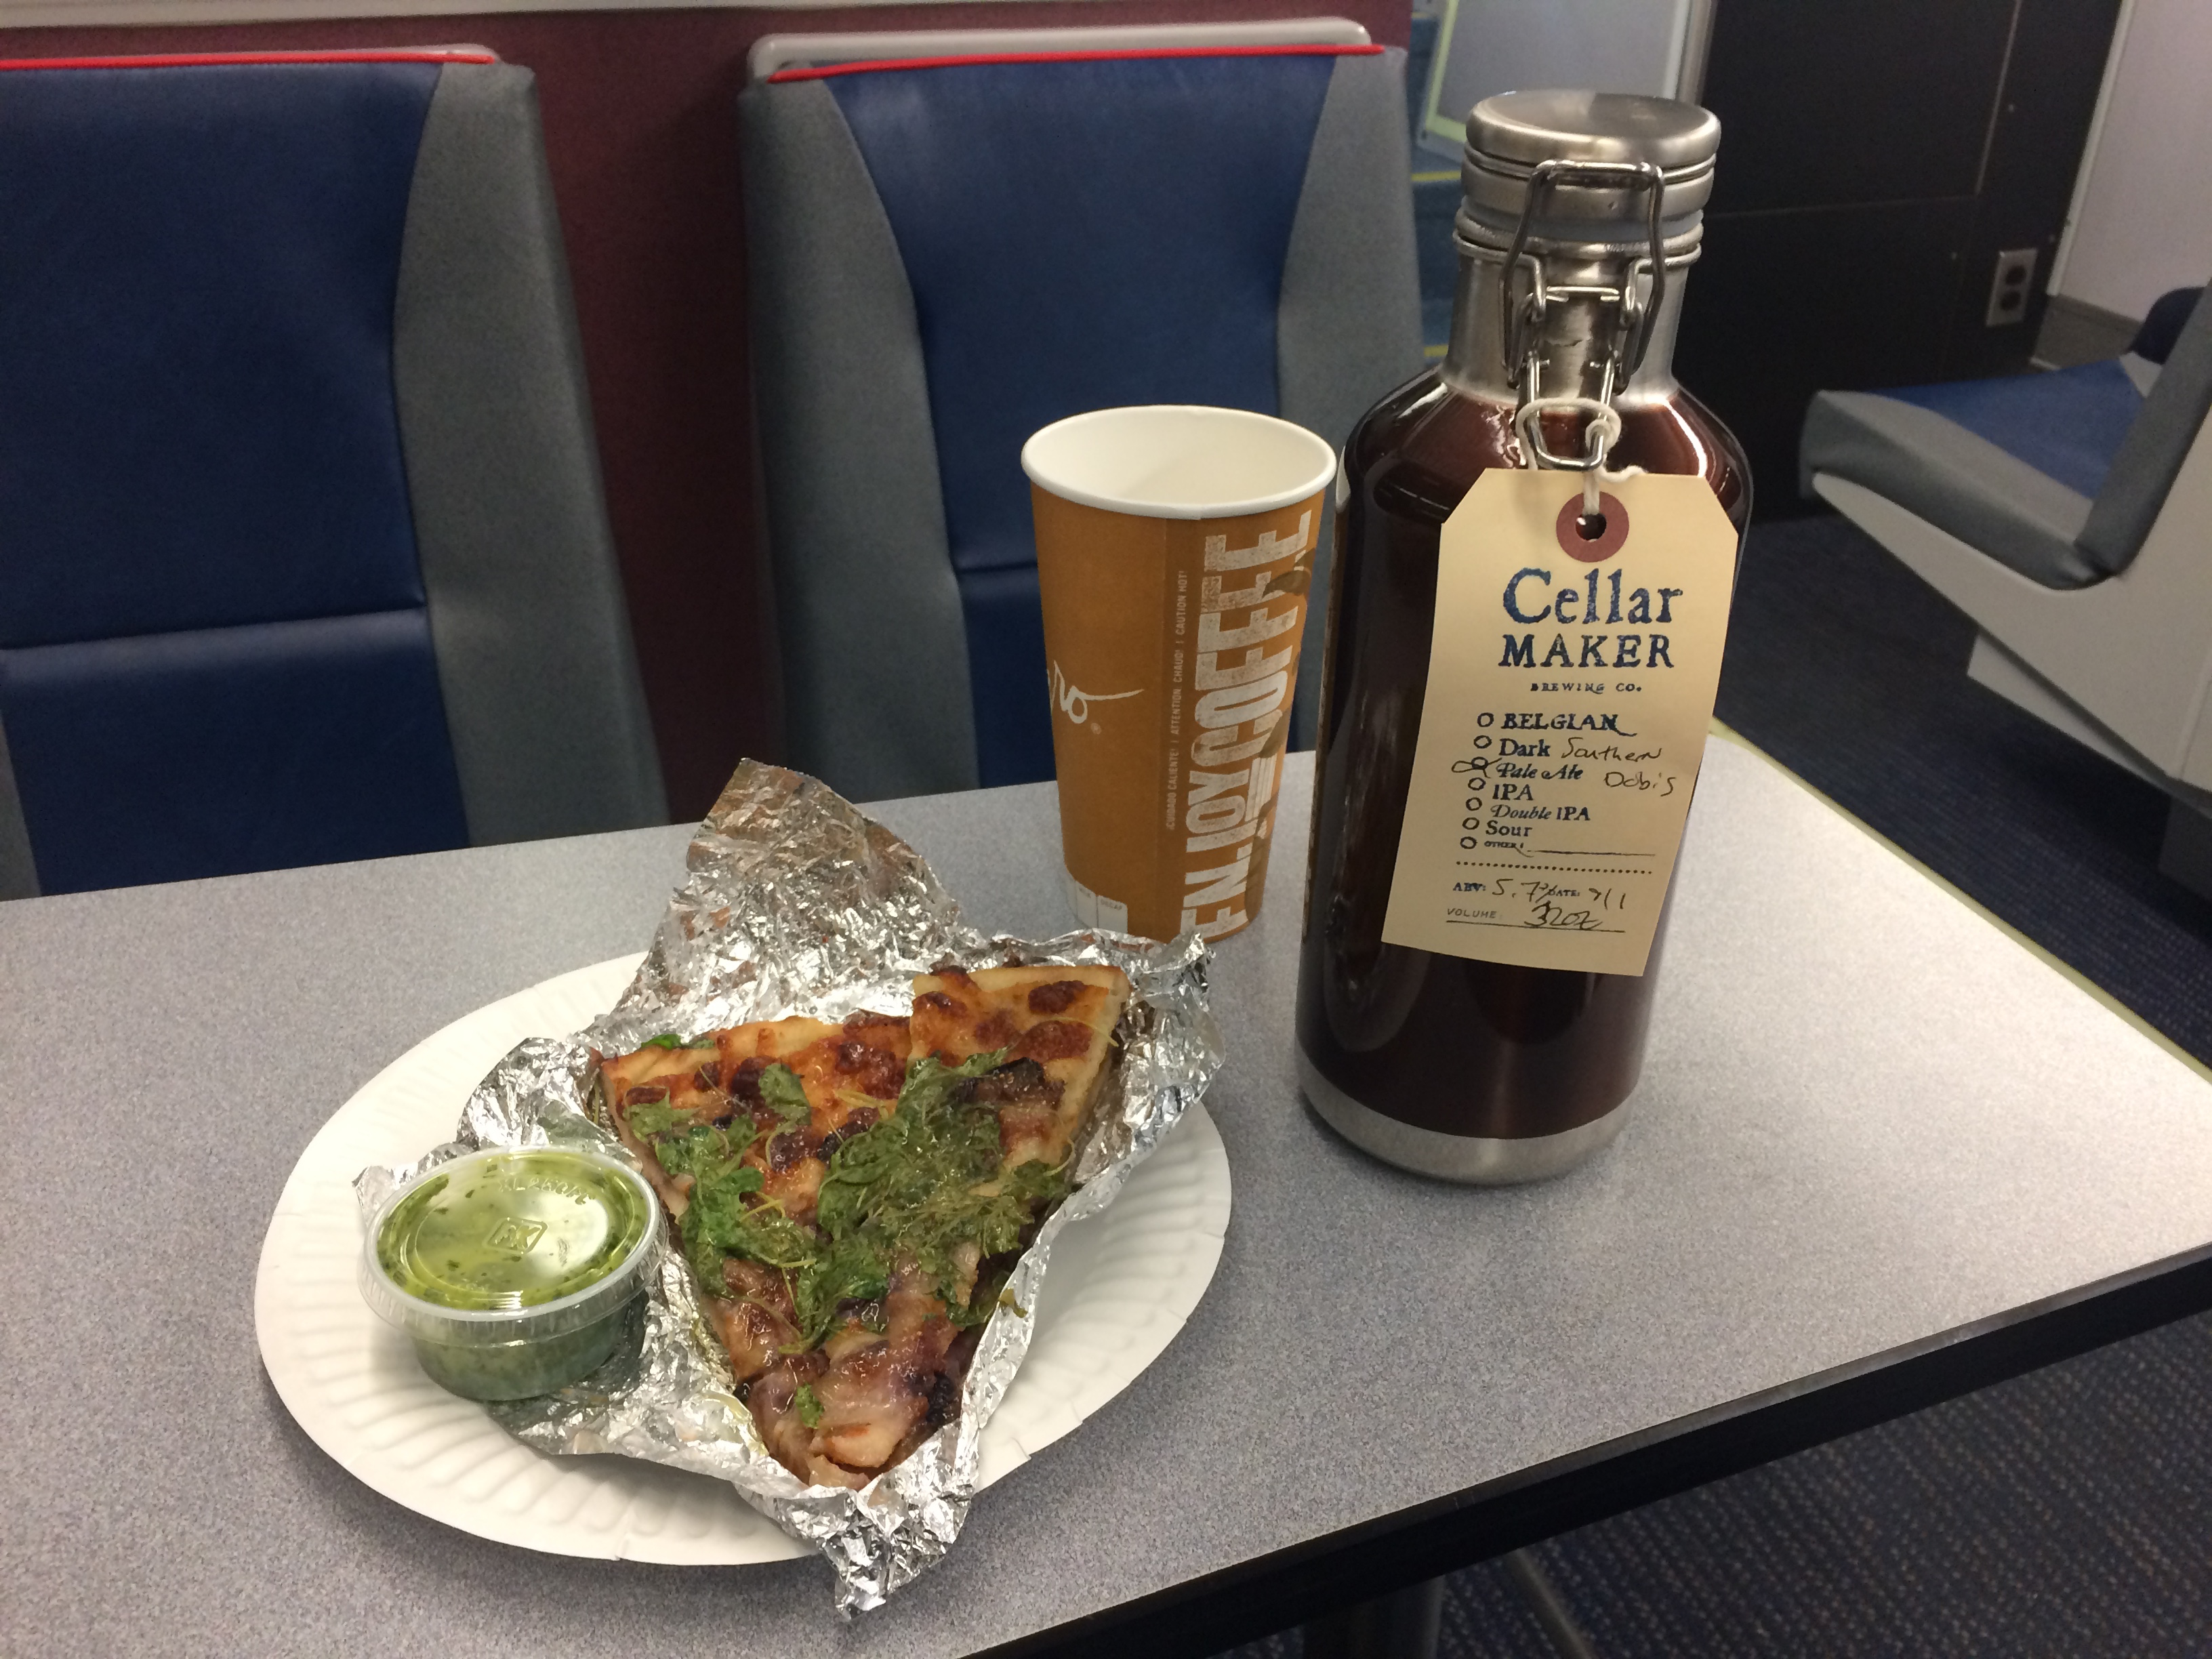 Great on the train! Now with pizza!